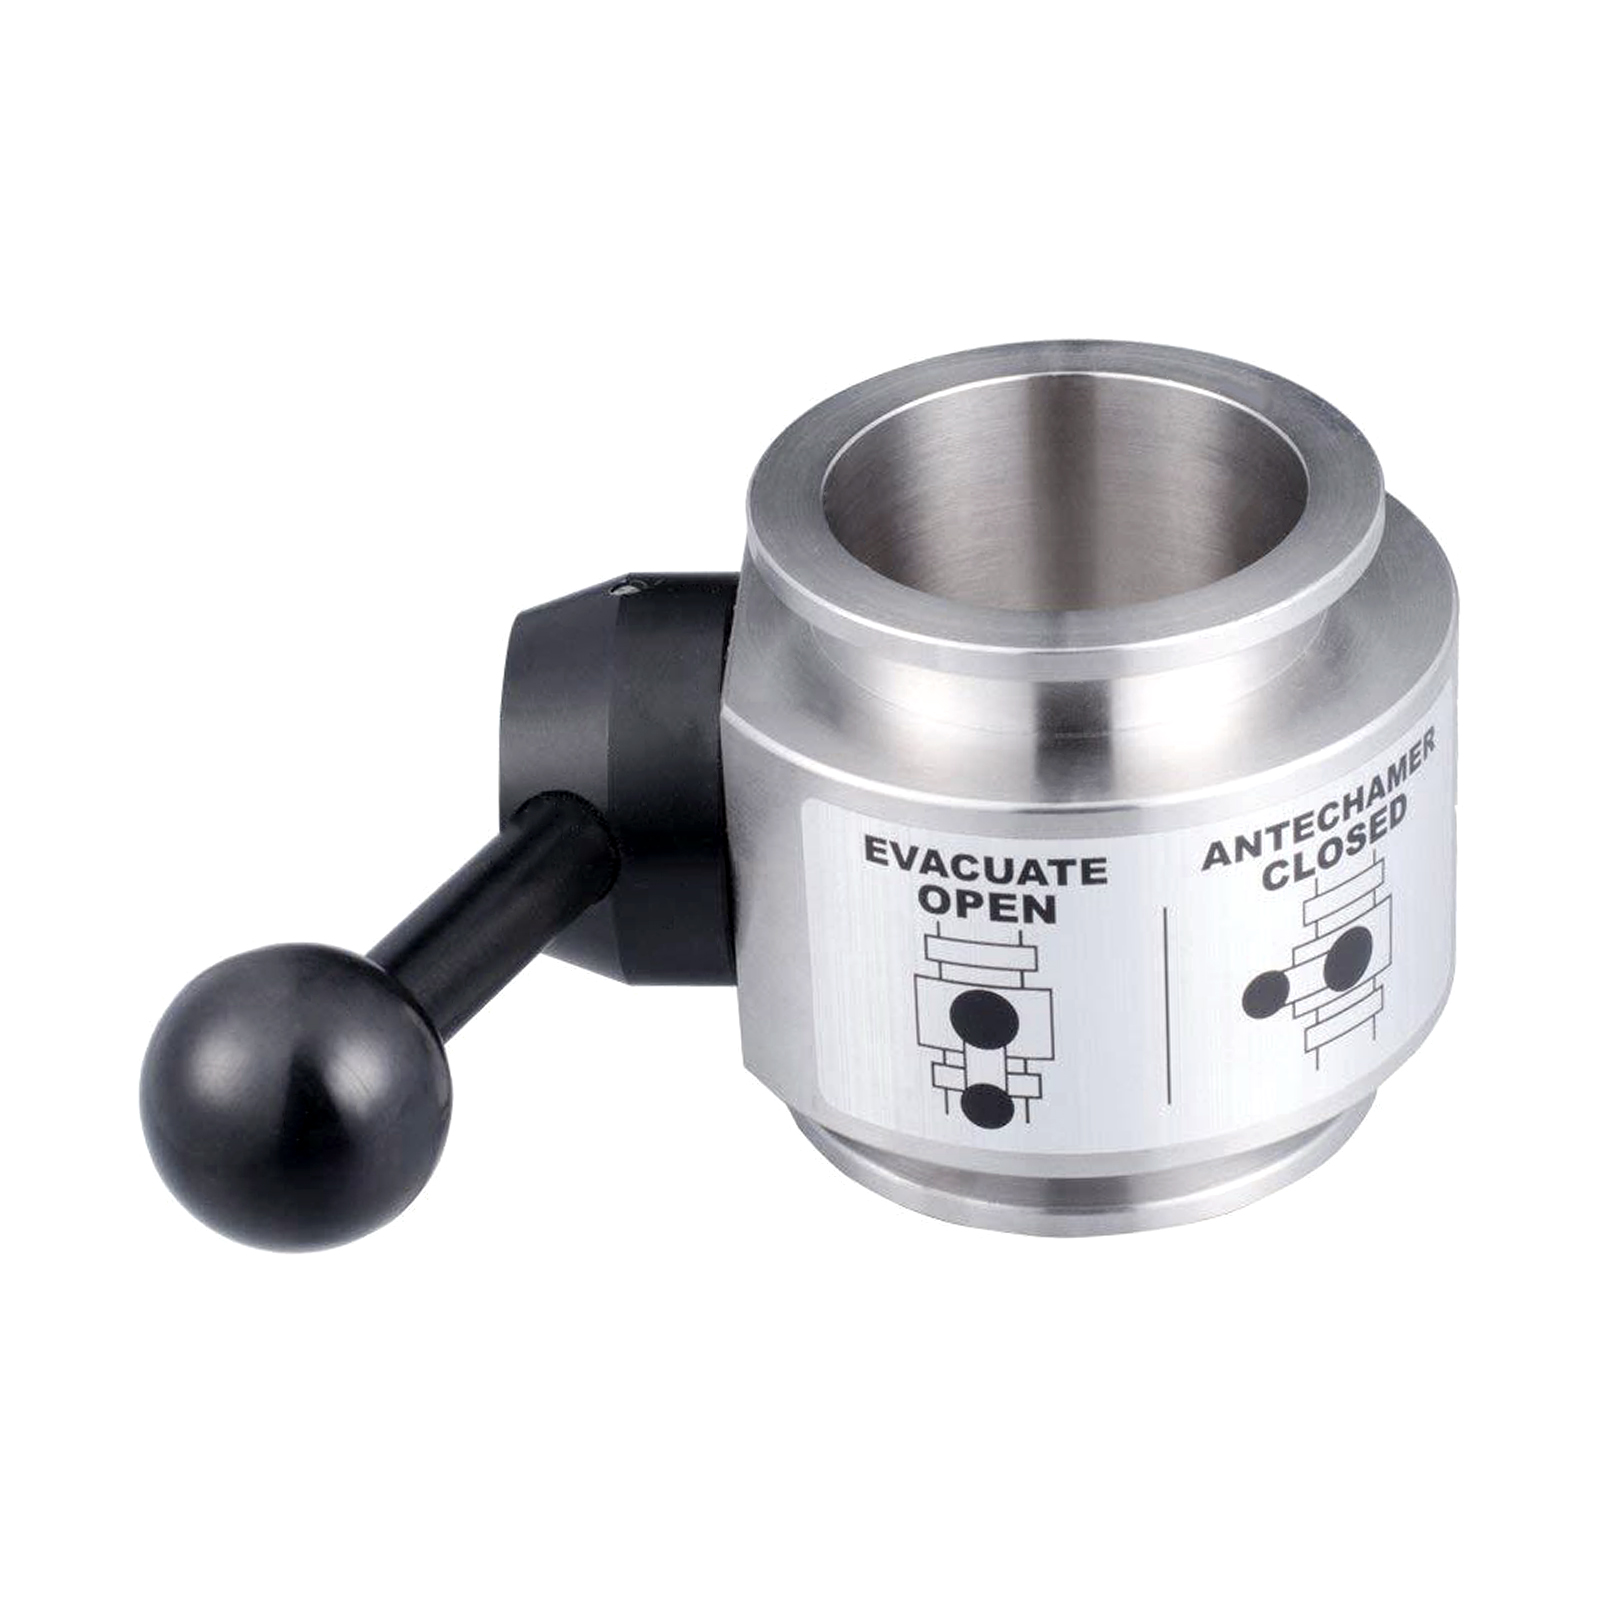 What does the High Platform of the High Platform Flange Ball Valve Mean?